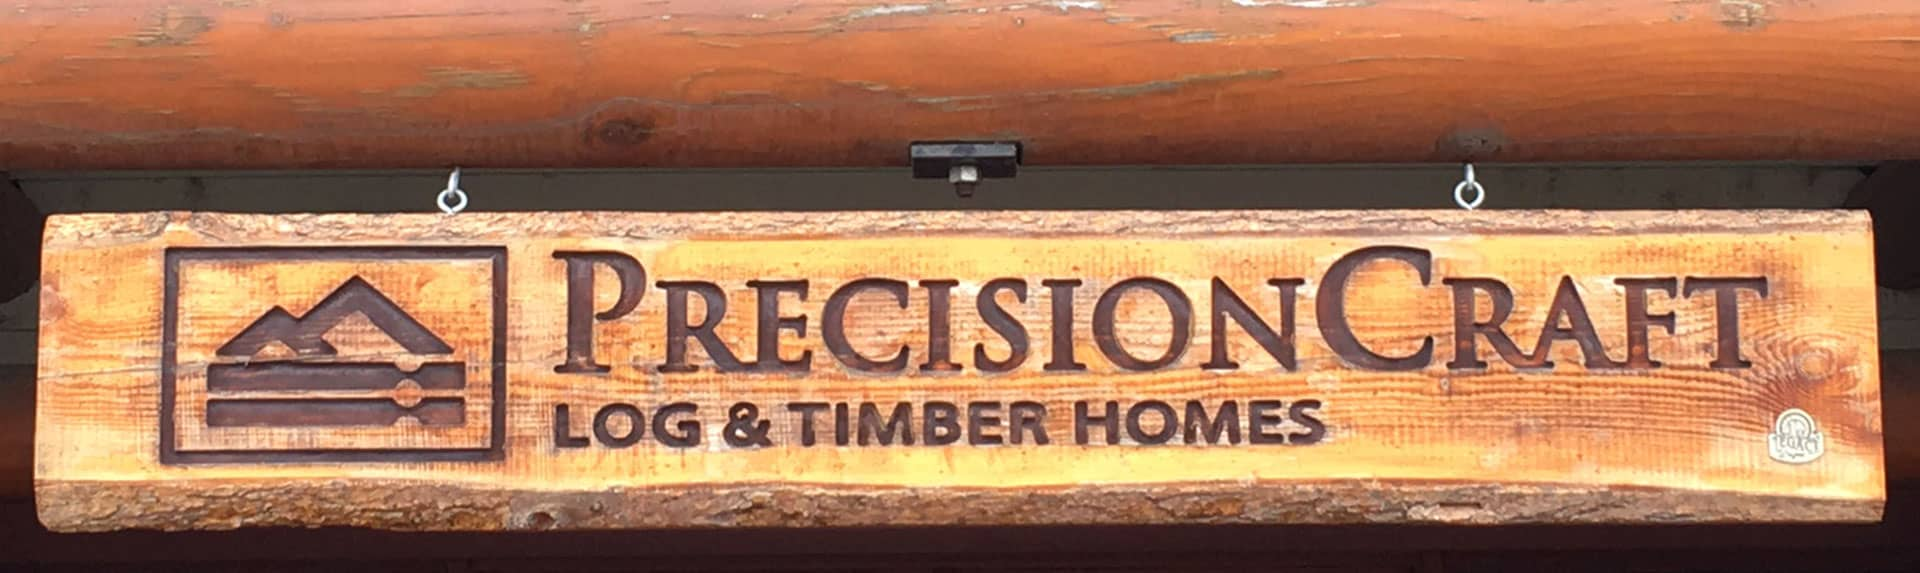 About PrecisionCraft Log & Timber Homes